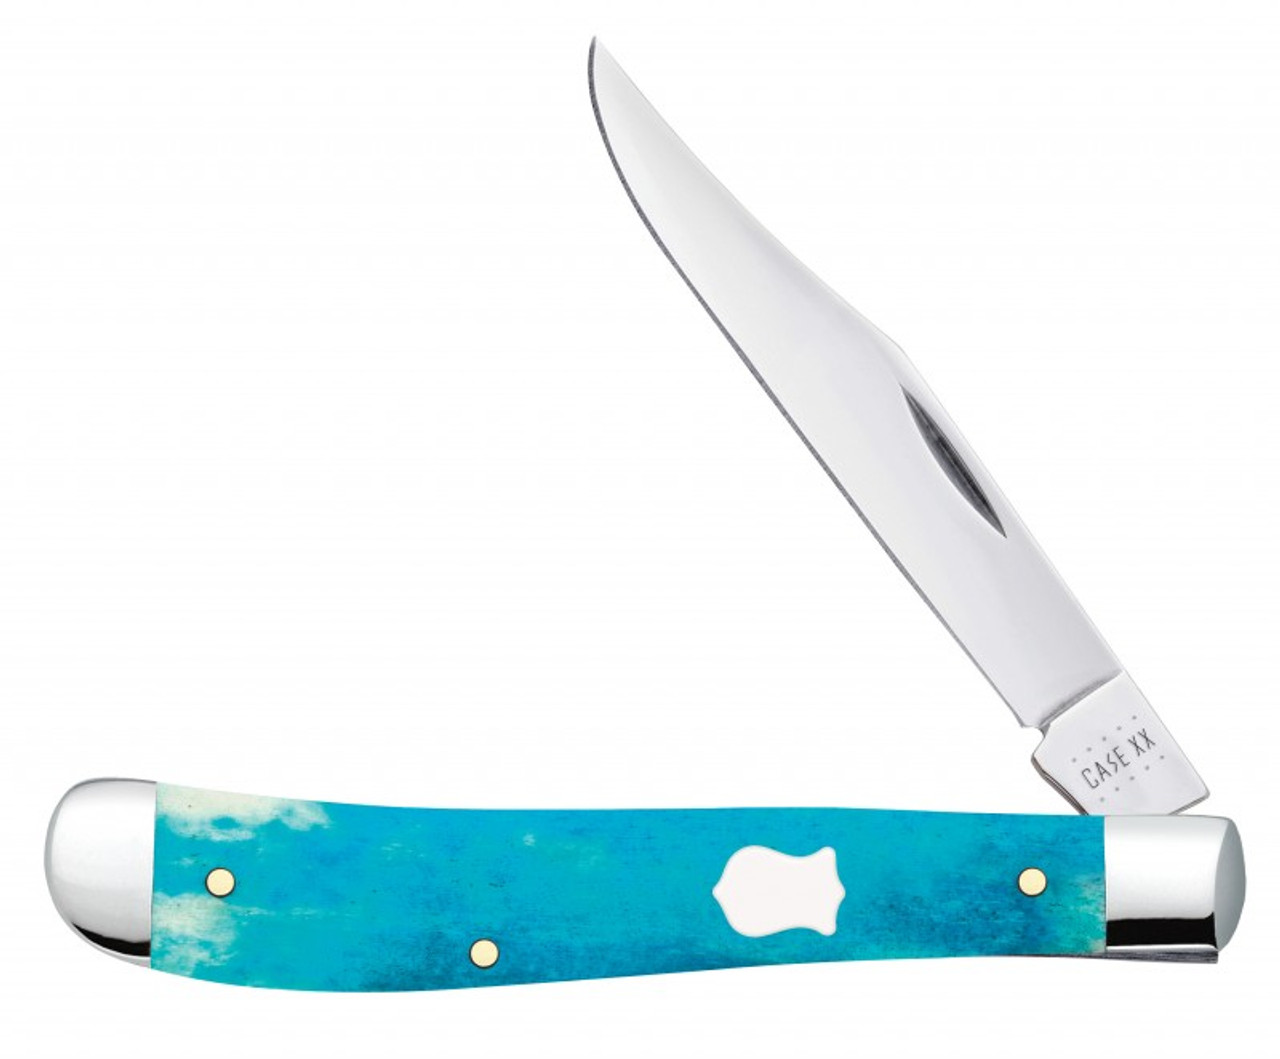 Case Slimline Trapper 50668 Smooth Caribbean Blue Bone Handle (61048 SS)